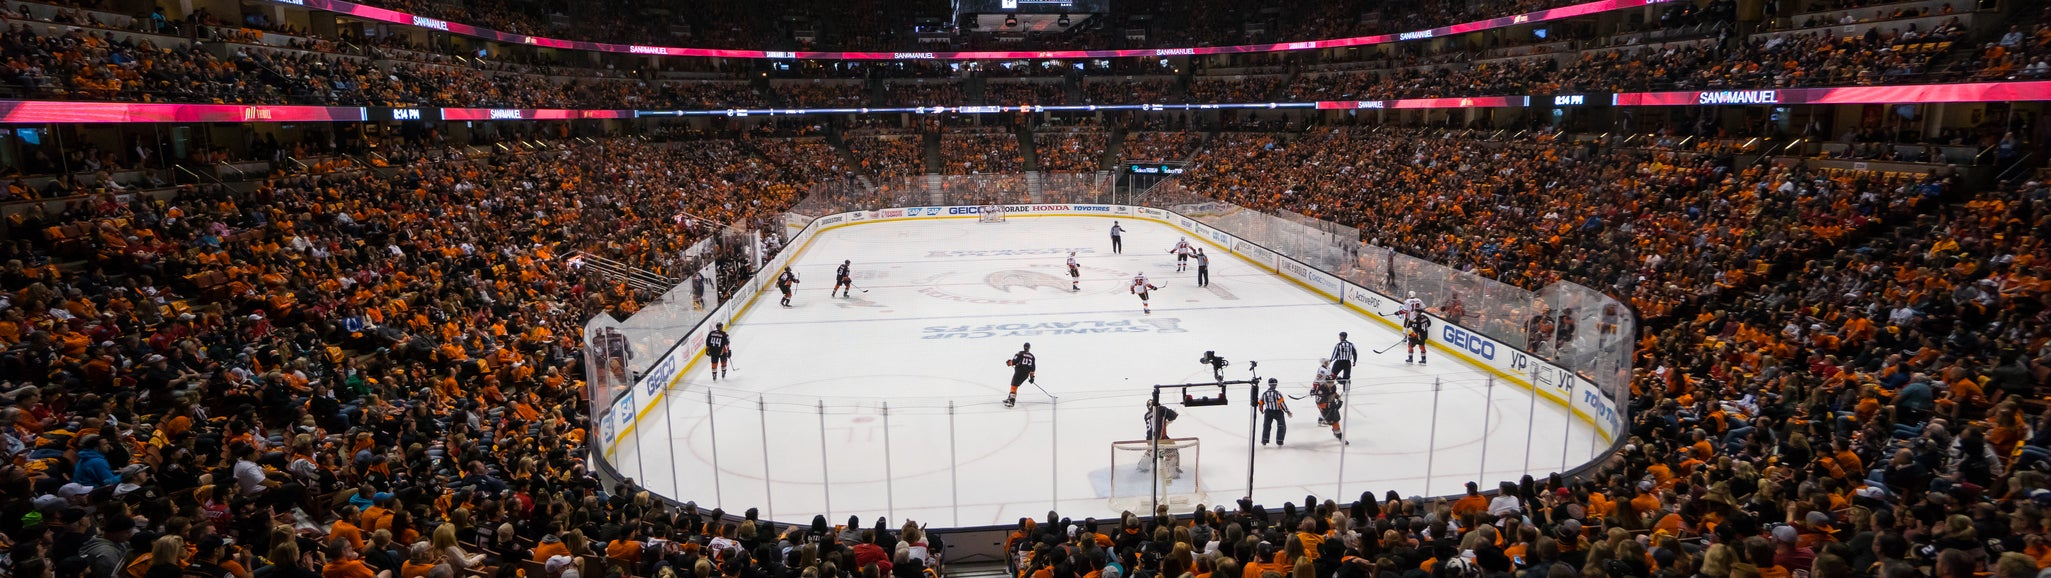 Seat view from Rinkside Goal